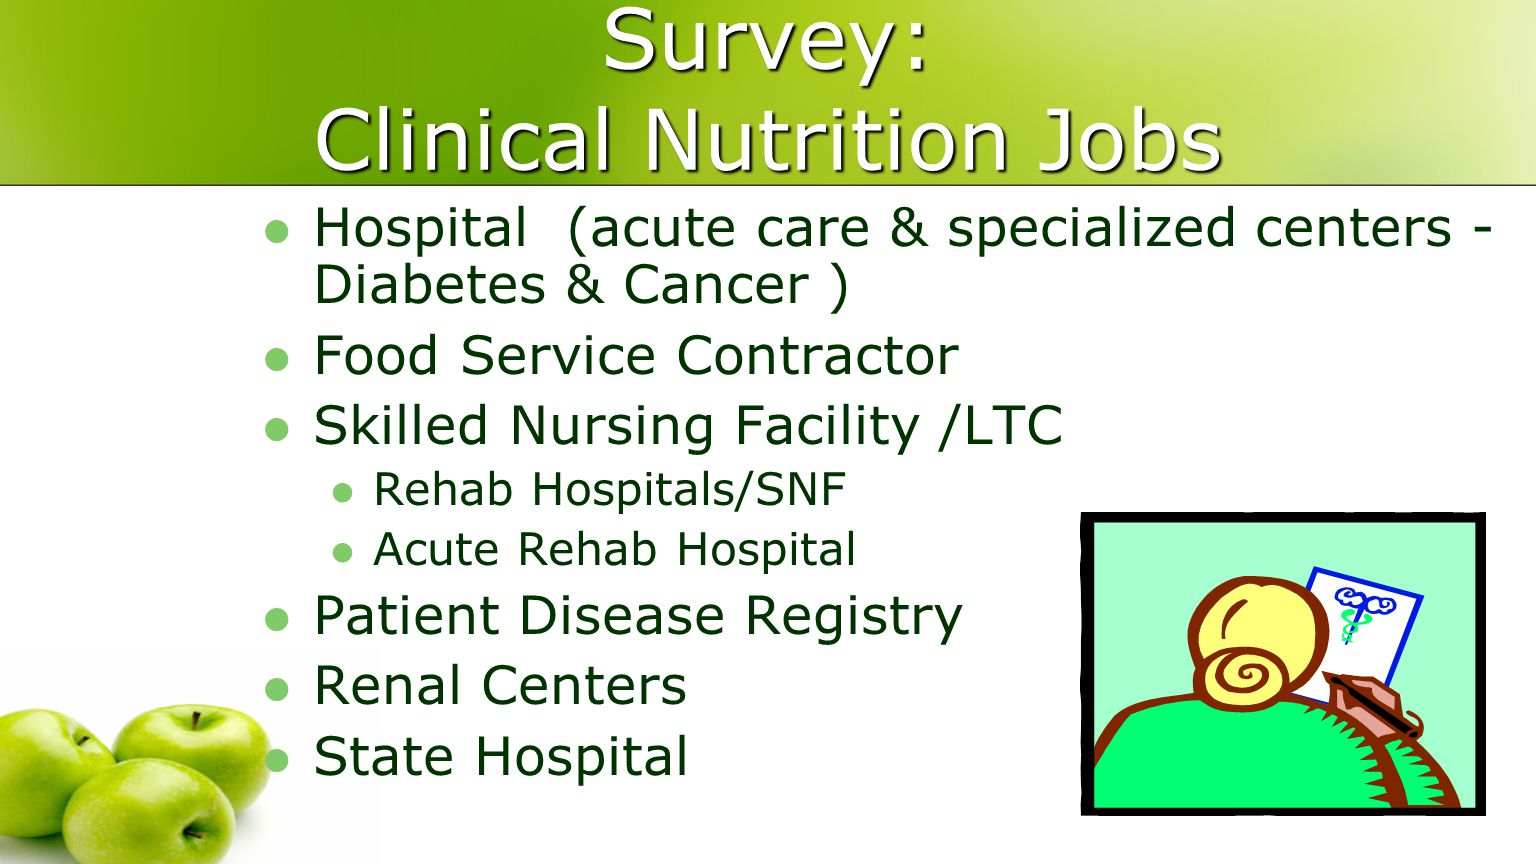 Survey: Clinical Nutrition Jobs Hospital (acute care & specialized centers - Diabetes & Cancer ) Food Service Contractor Skilled Nursing Facility /LTC Rehab Hospitals/SNF Acute Rehab Hospital Patient Disease Registry Renal Centers State Hospital